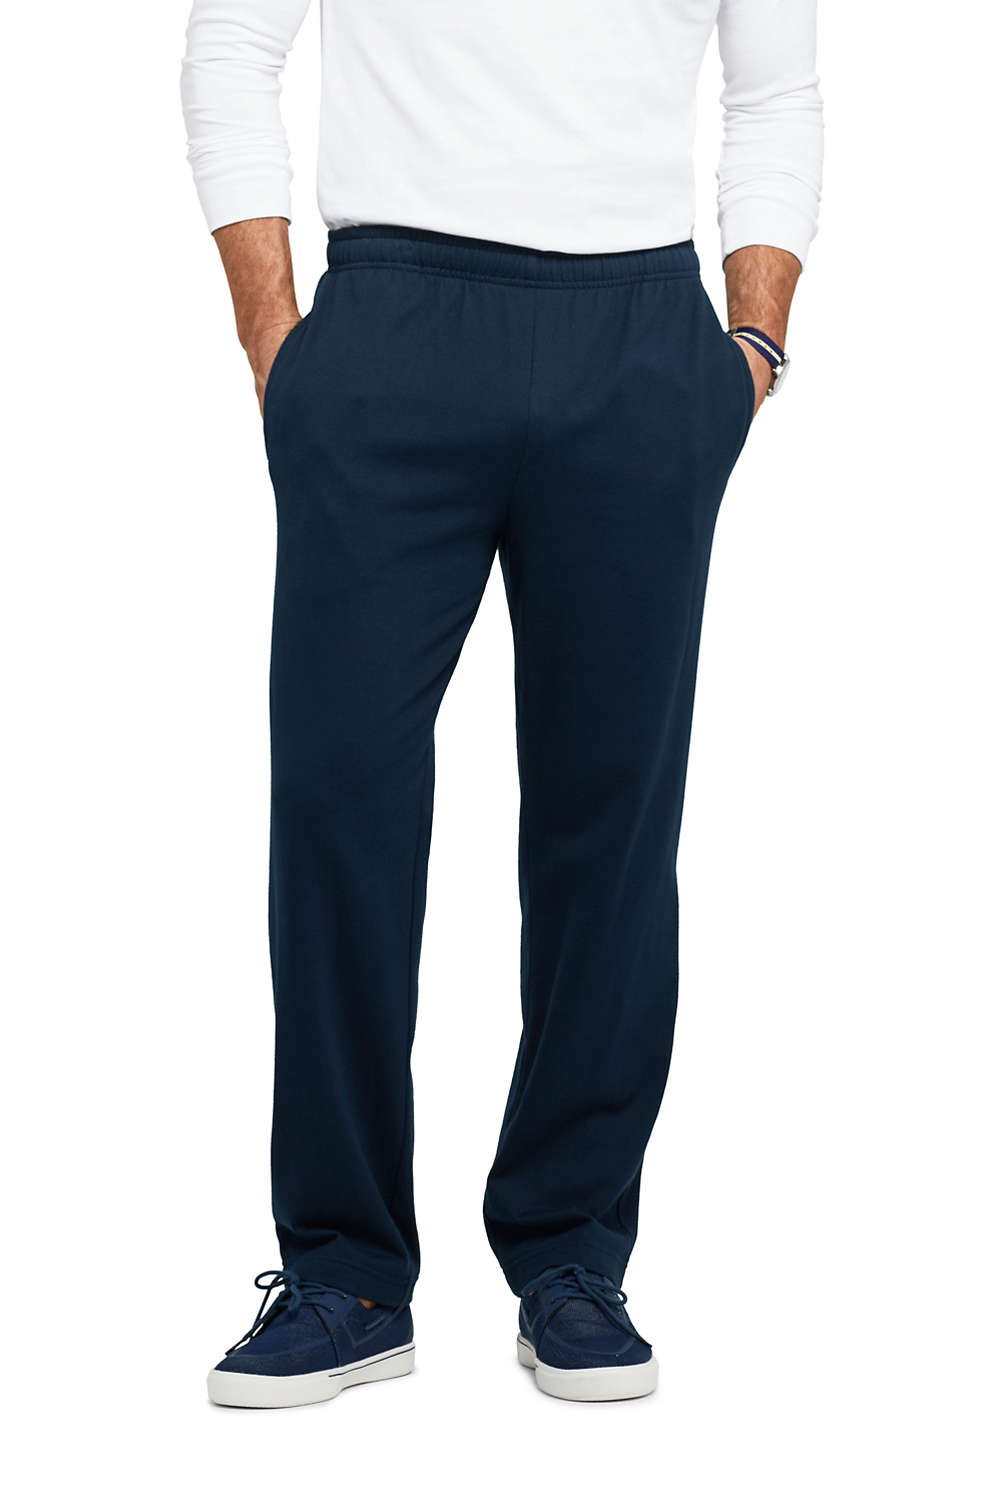 0734816e3048ef Men's Jersey Knit Pants from Lands' End